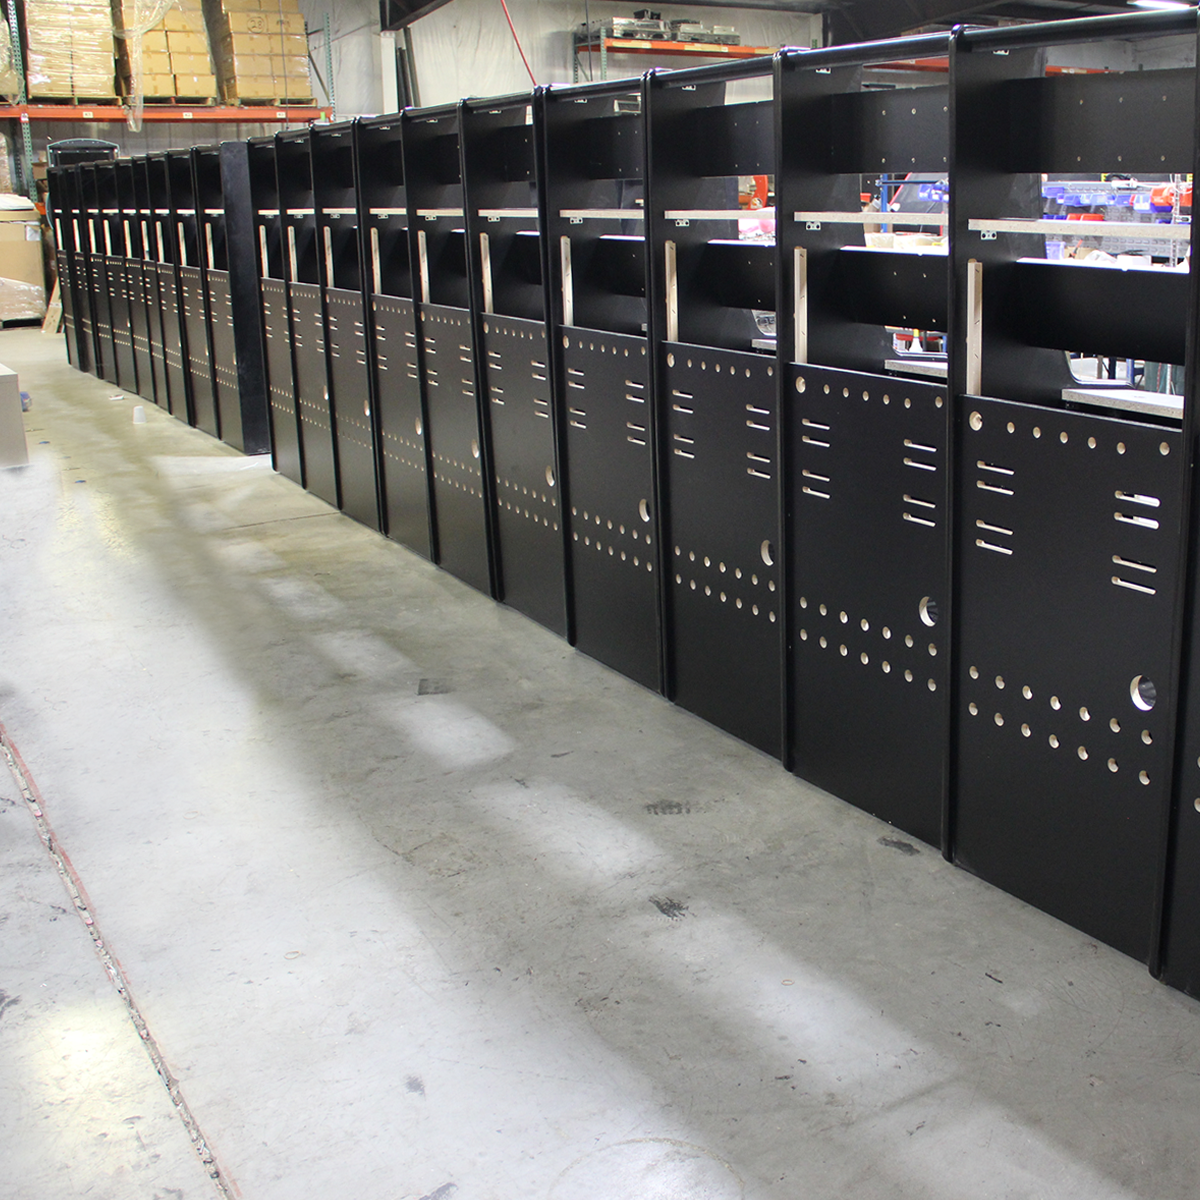 Line of cabinets, ready for wiring.